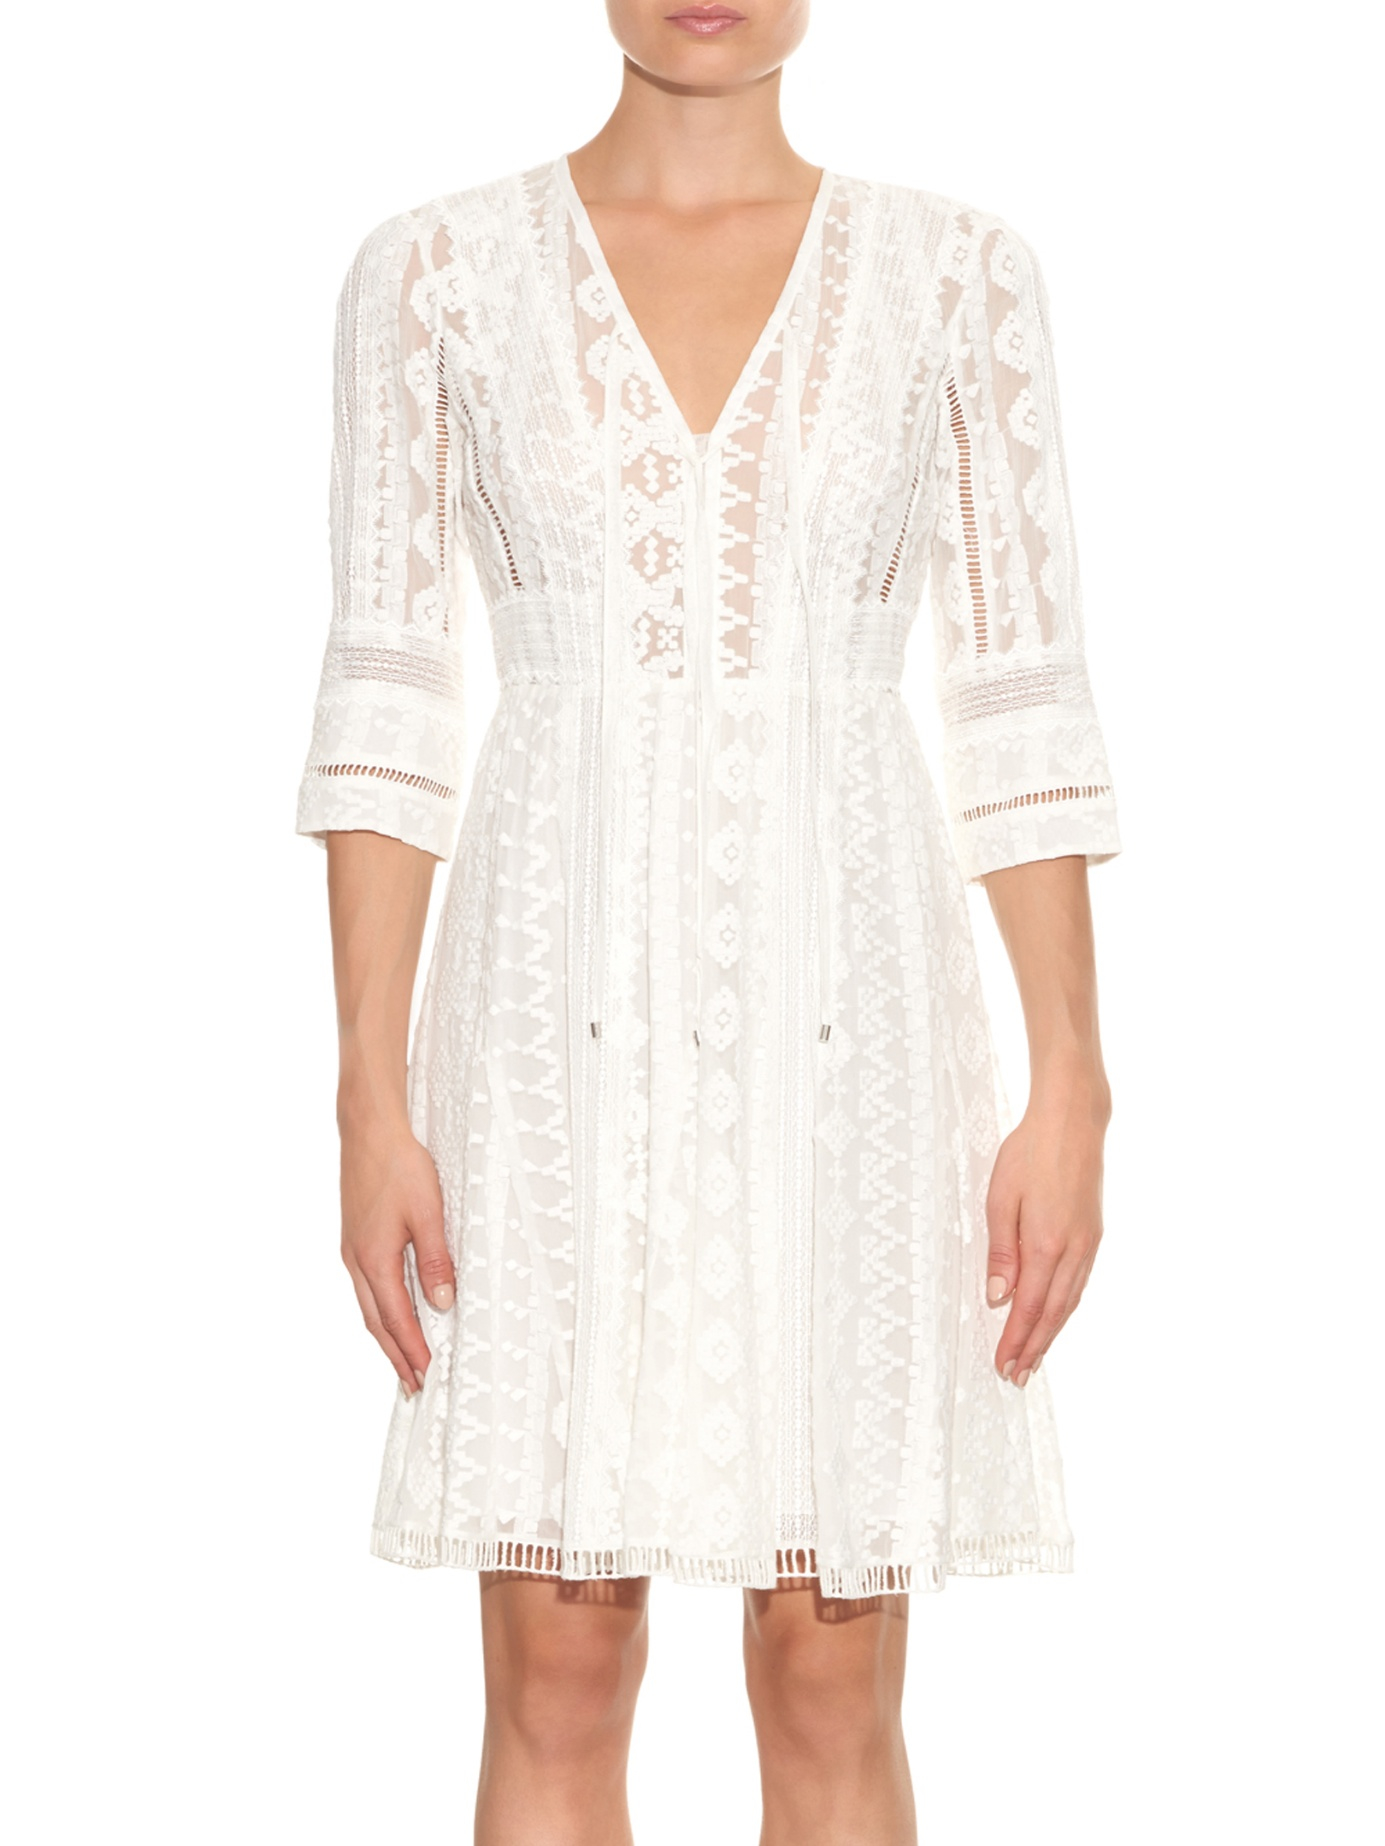 Lyst rebecca taylor embroidered silk chiffon dress in white